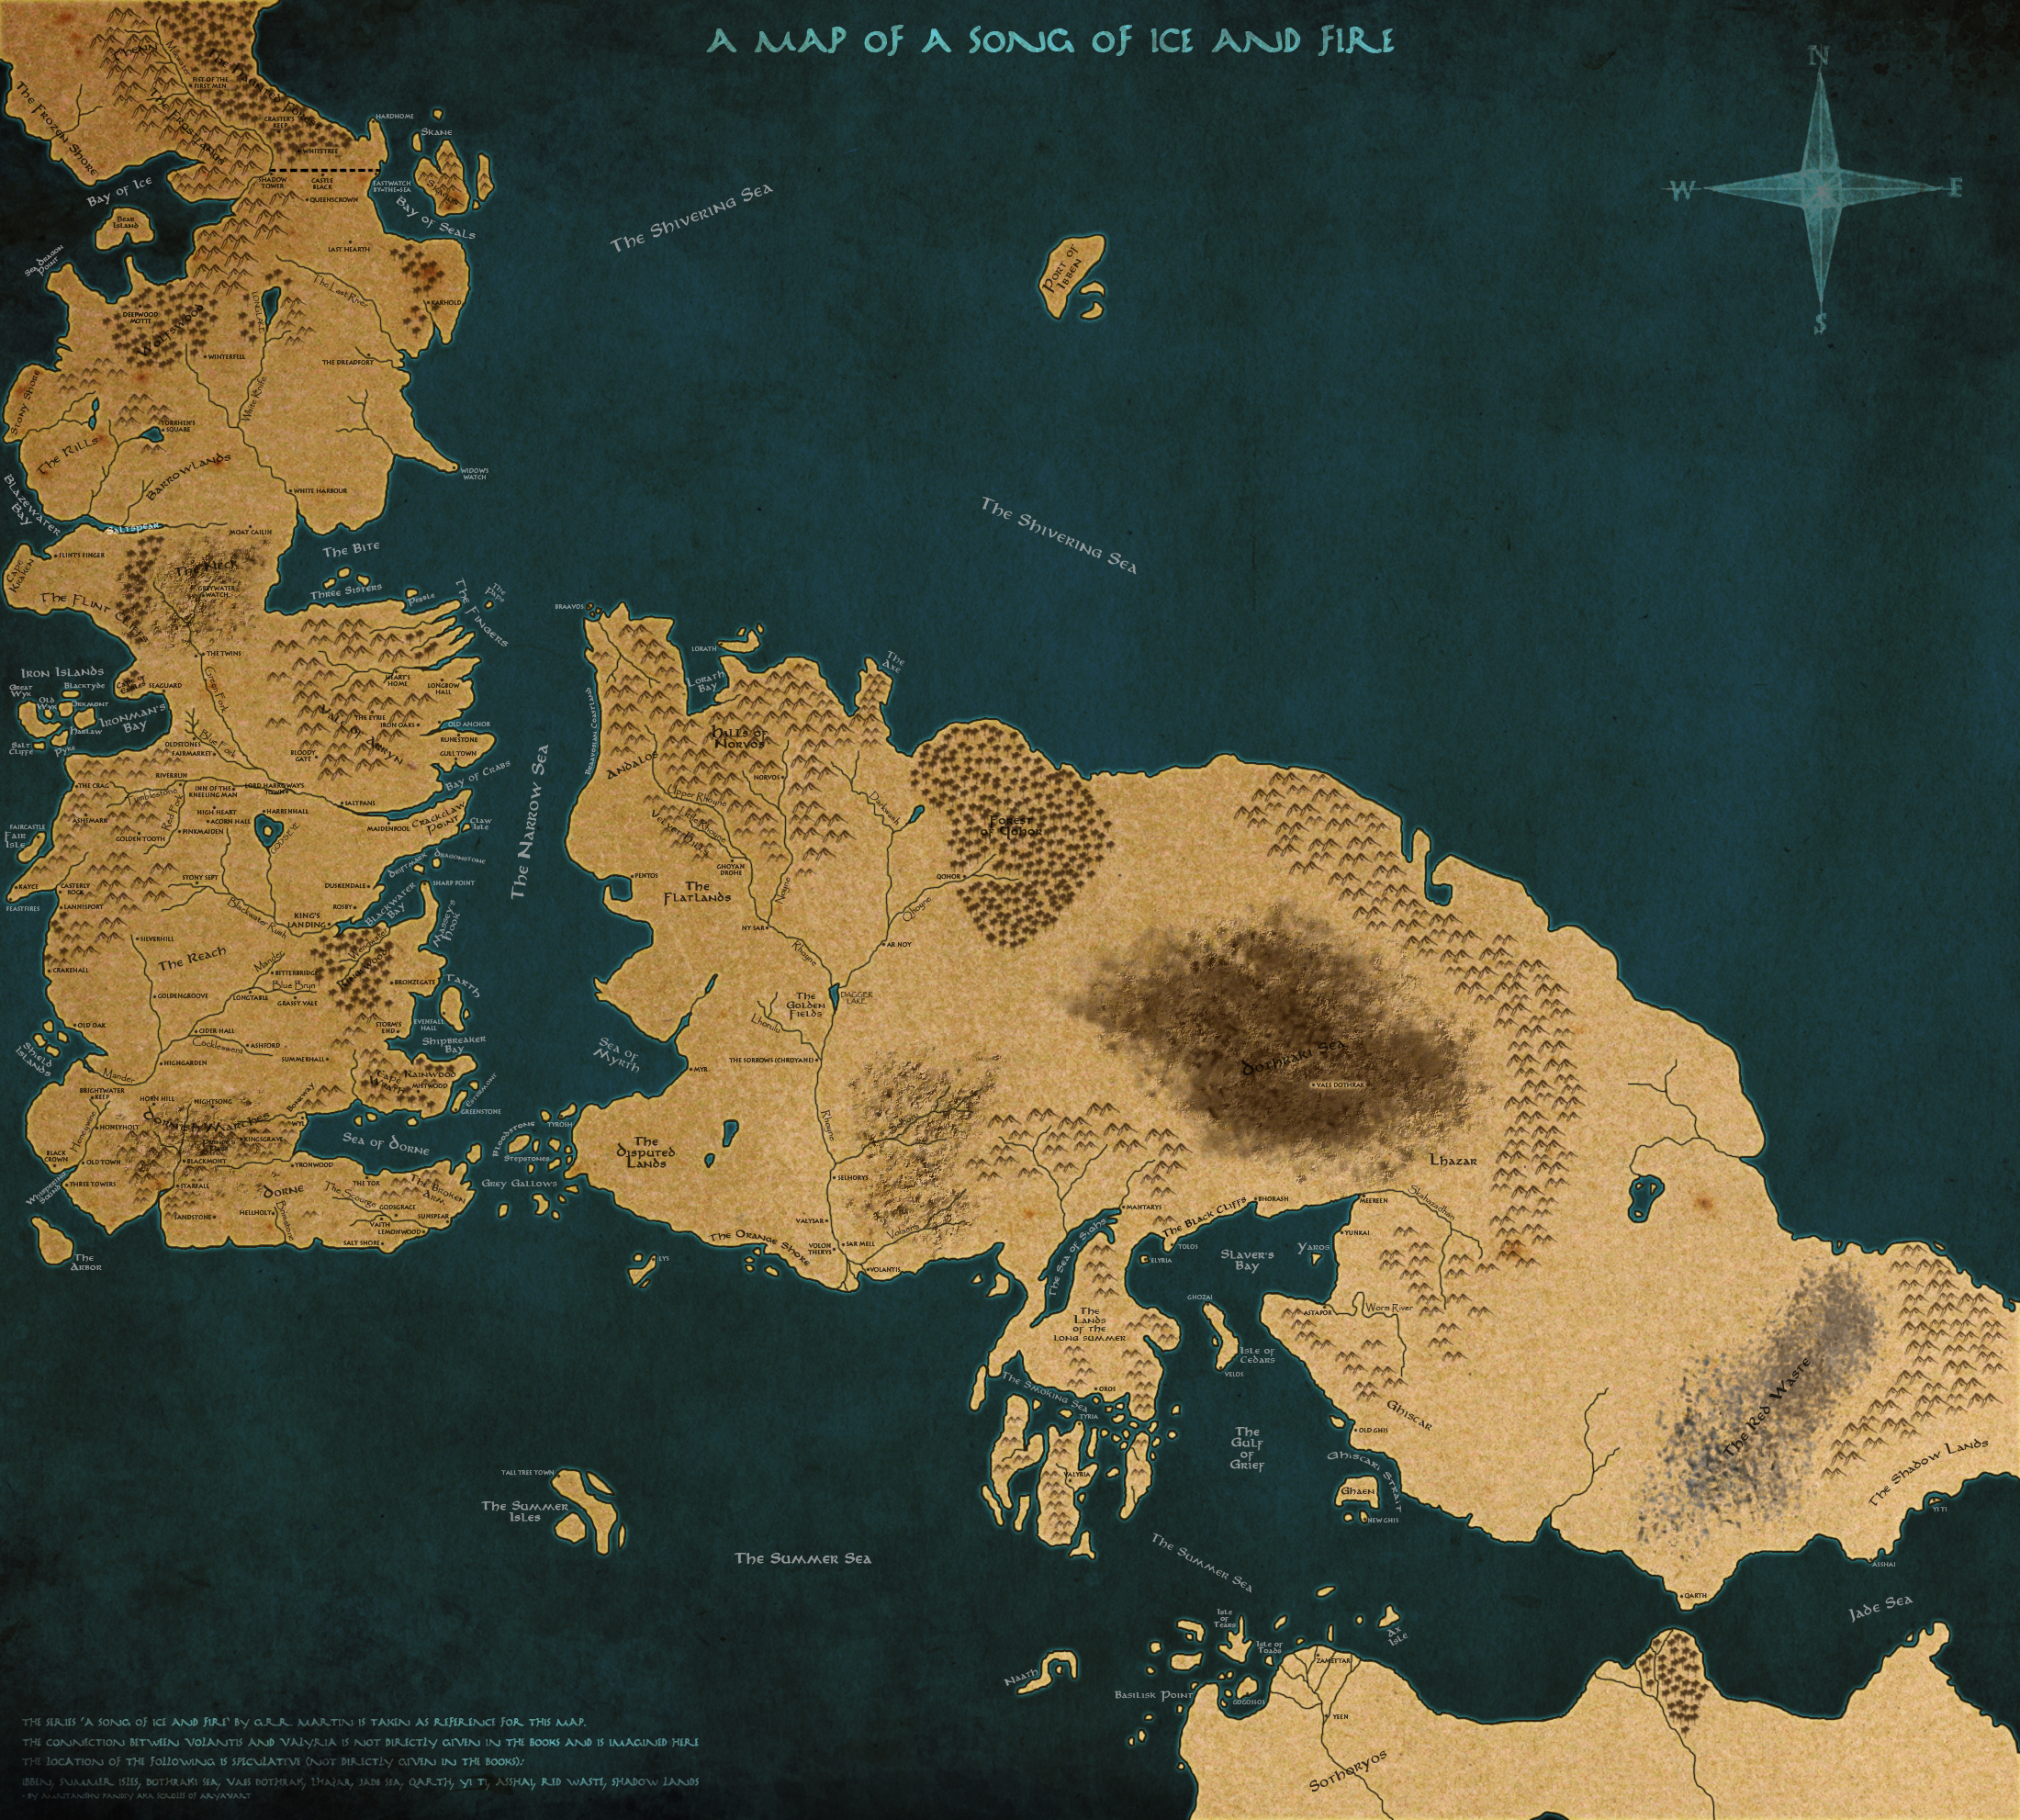 awesome and  prehensive map of all the lands in asoiaf